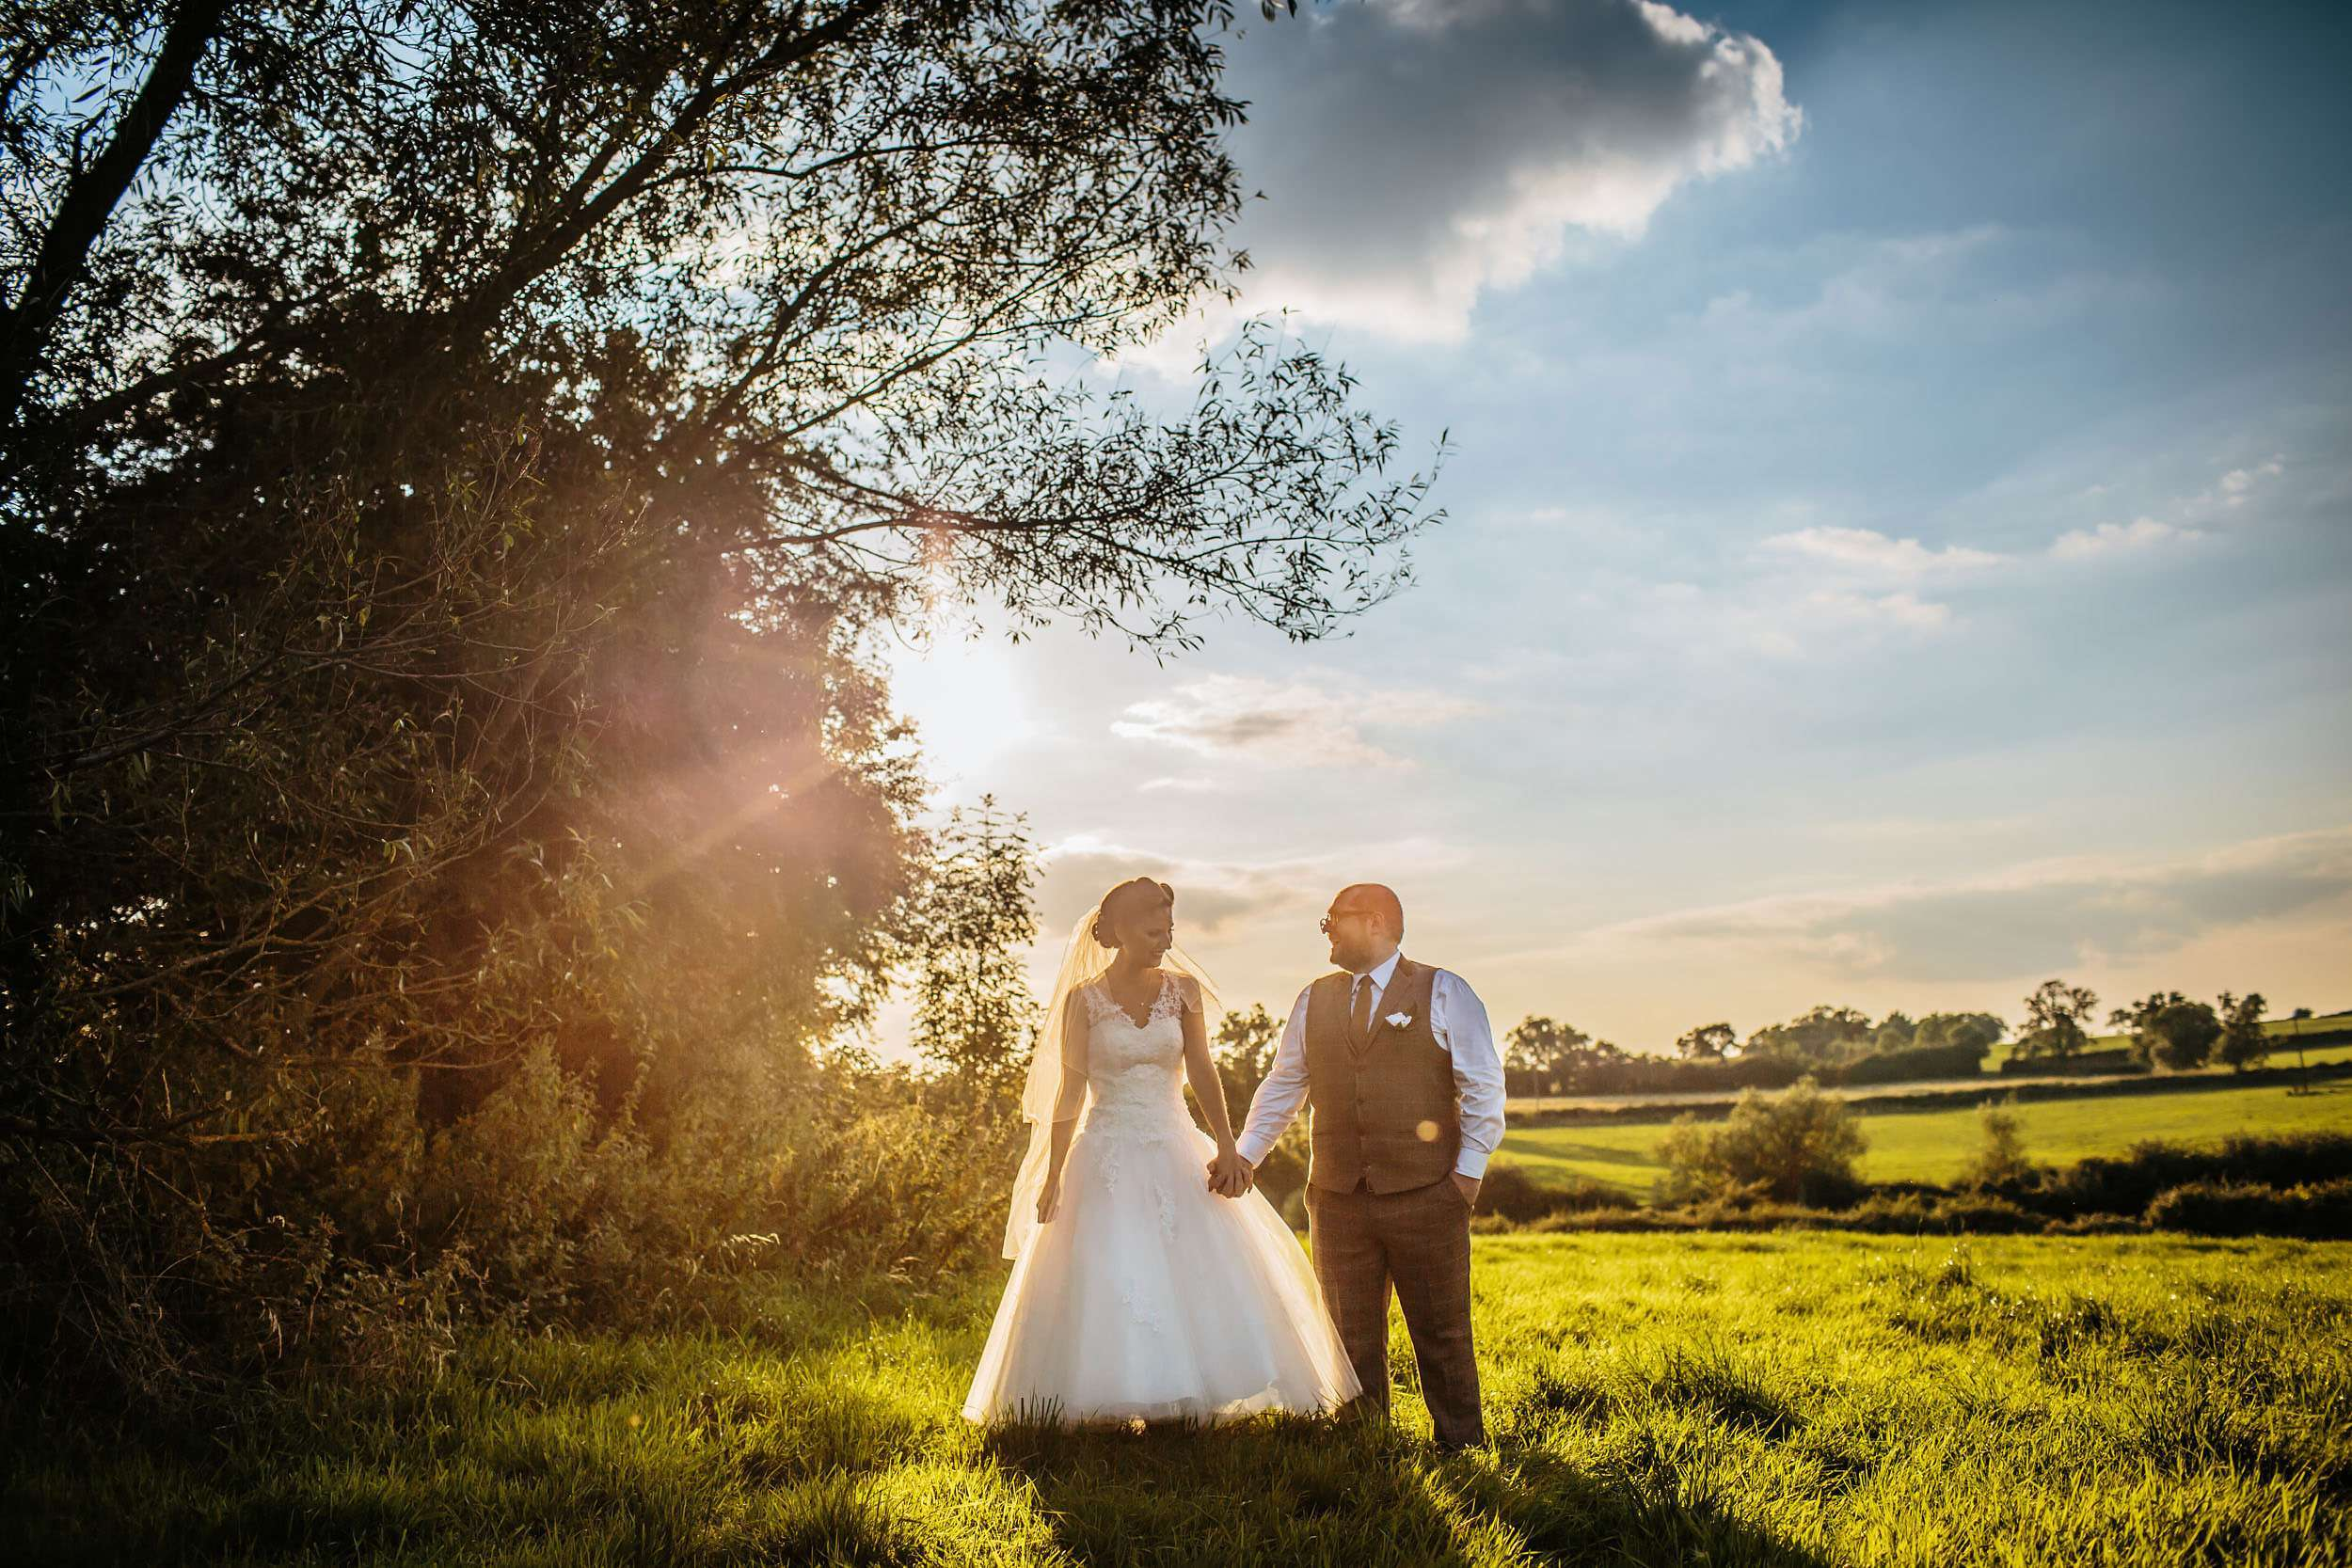 Bride and groom at sunset in a gorgeous field